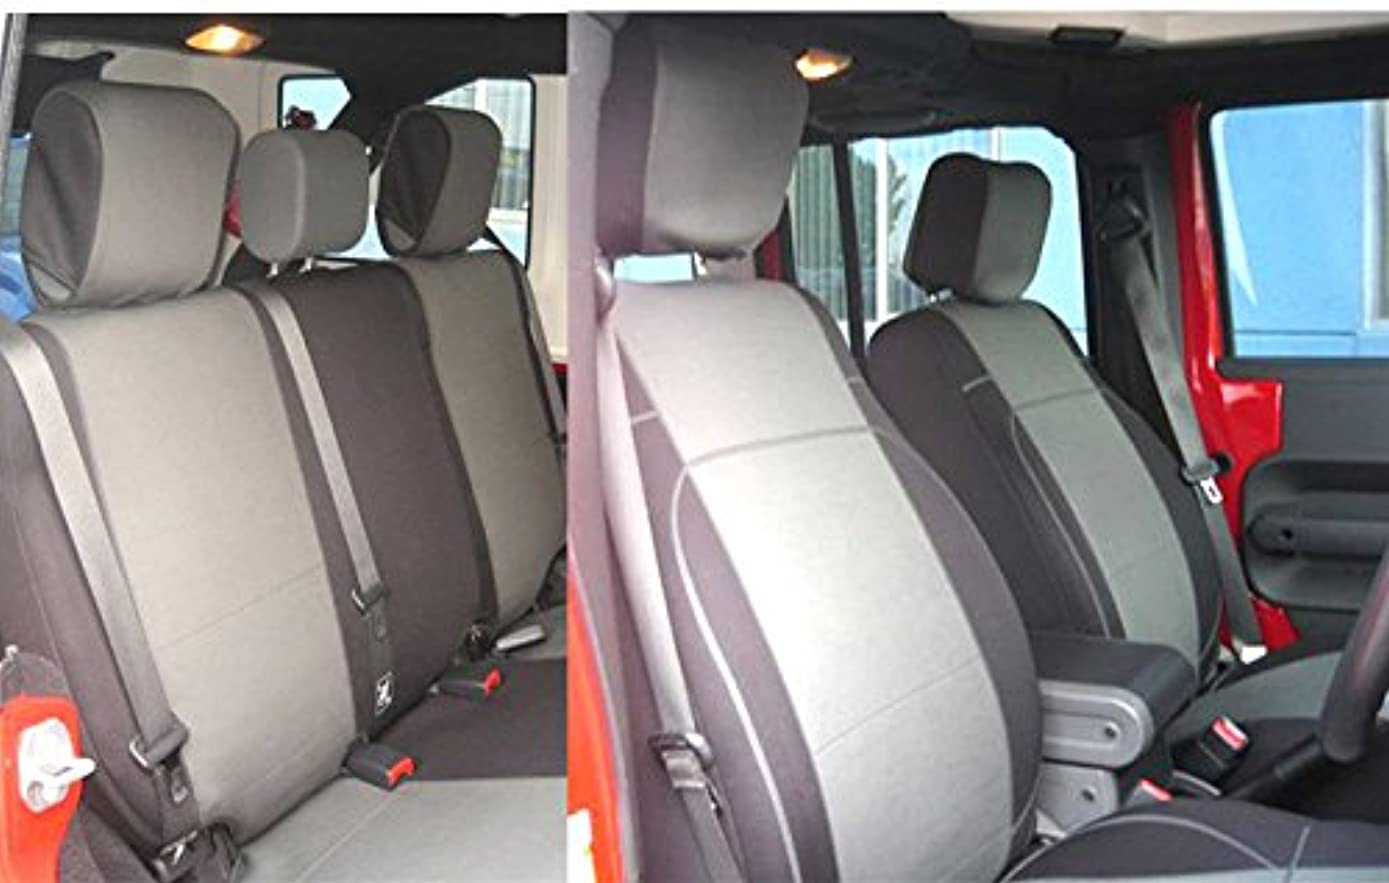 GEARFLAG Neoprene Seat Cover Custom fits Jeep Wrangler JK 2007-17 Unlimited 4 Door Full Set with Side airbag Opening (Front + Rear Seats) (Grey/Black jp)